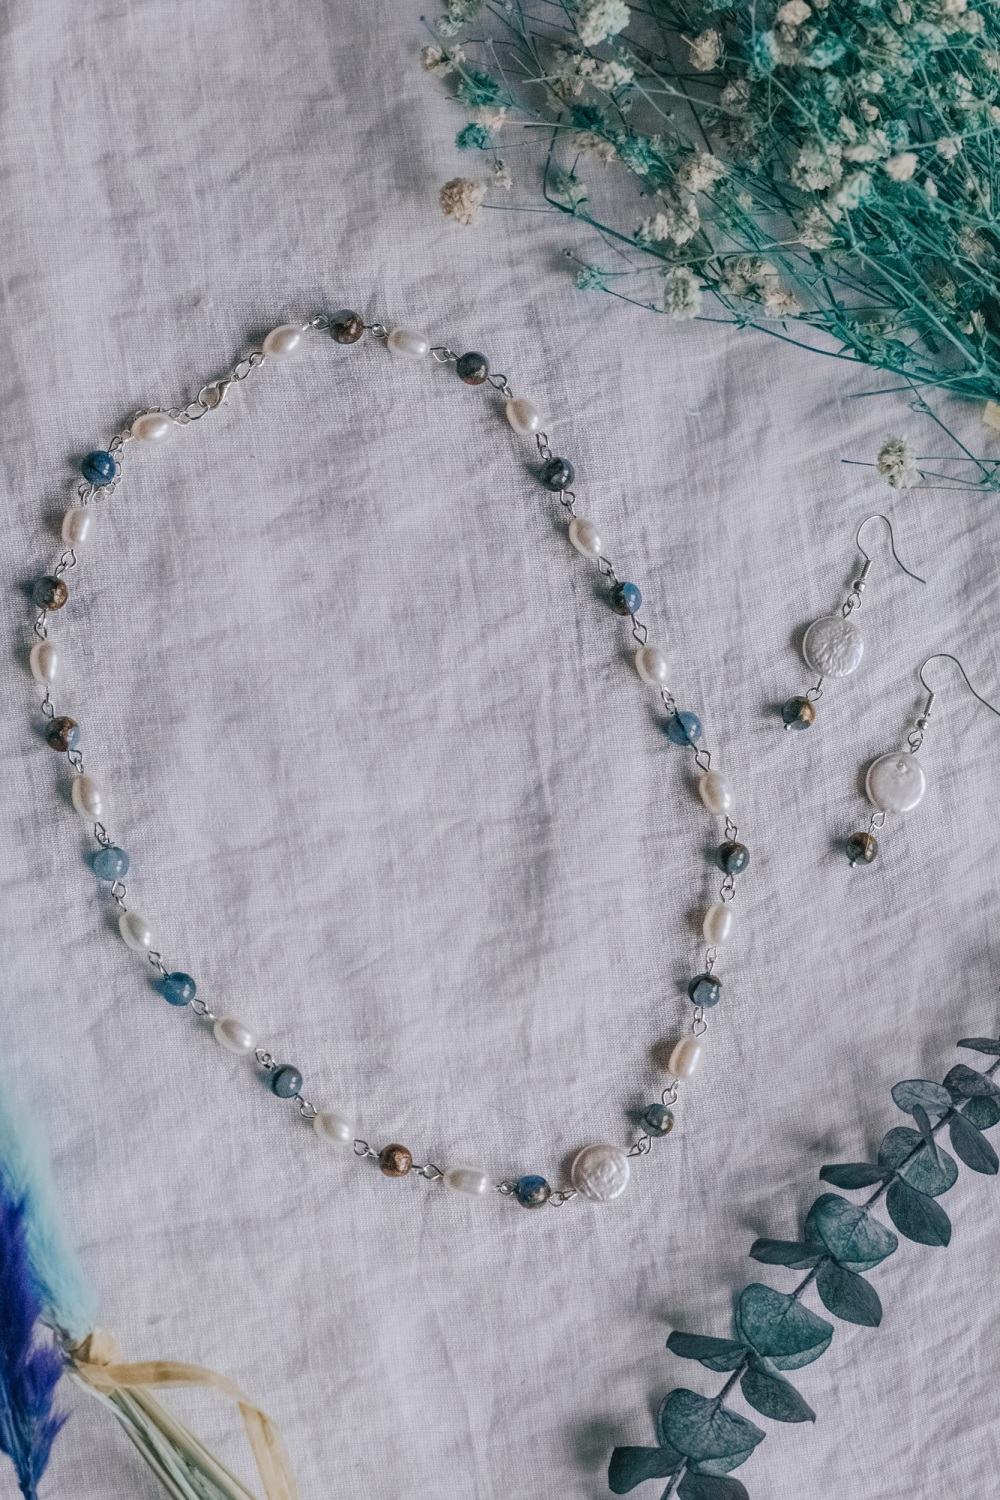 Mother of Pearl with Blue Kyanite Stone Necklace & Earrings Set